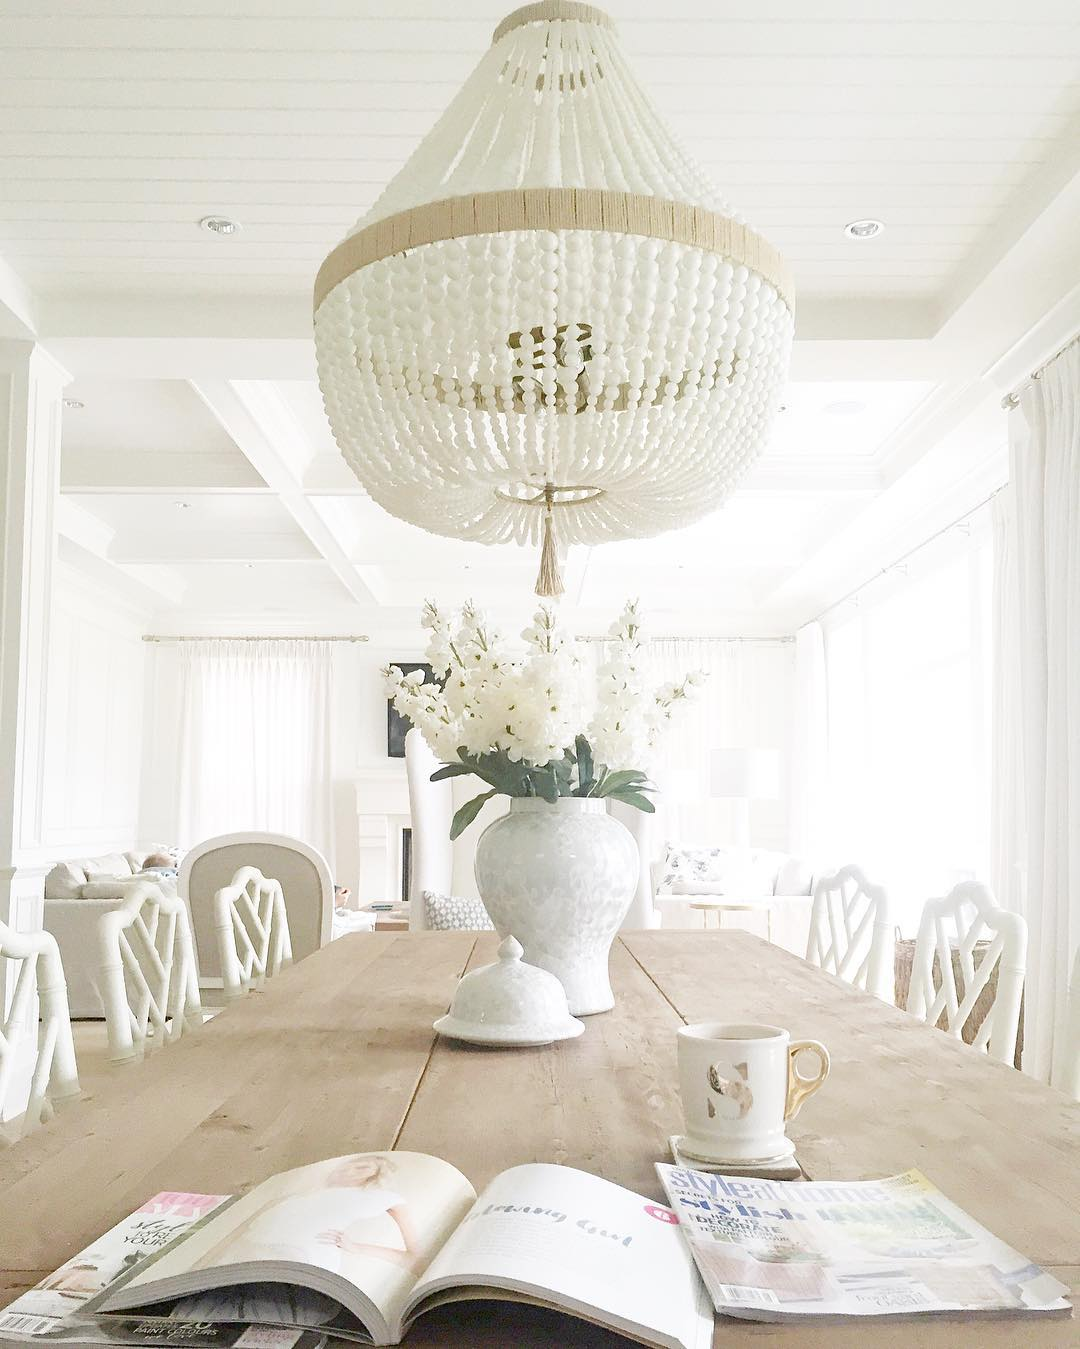 White painted wood paneled ceiling, white walls, blonde wood raw table.